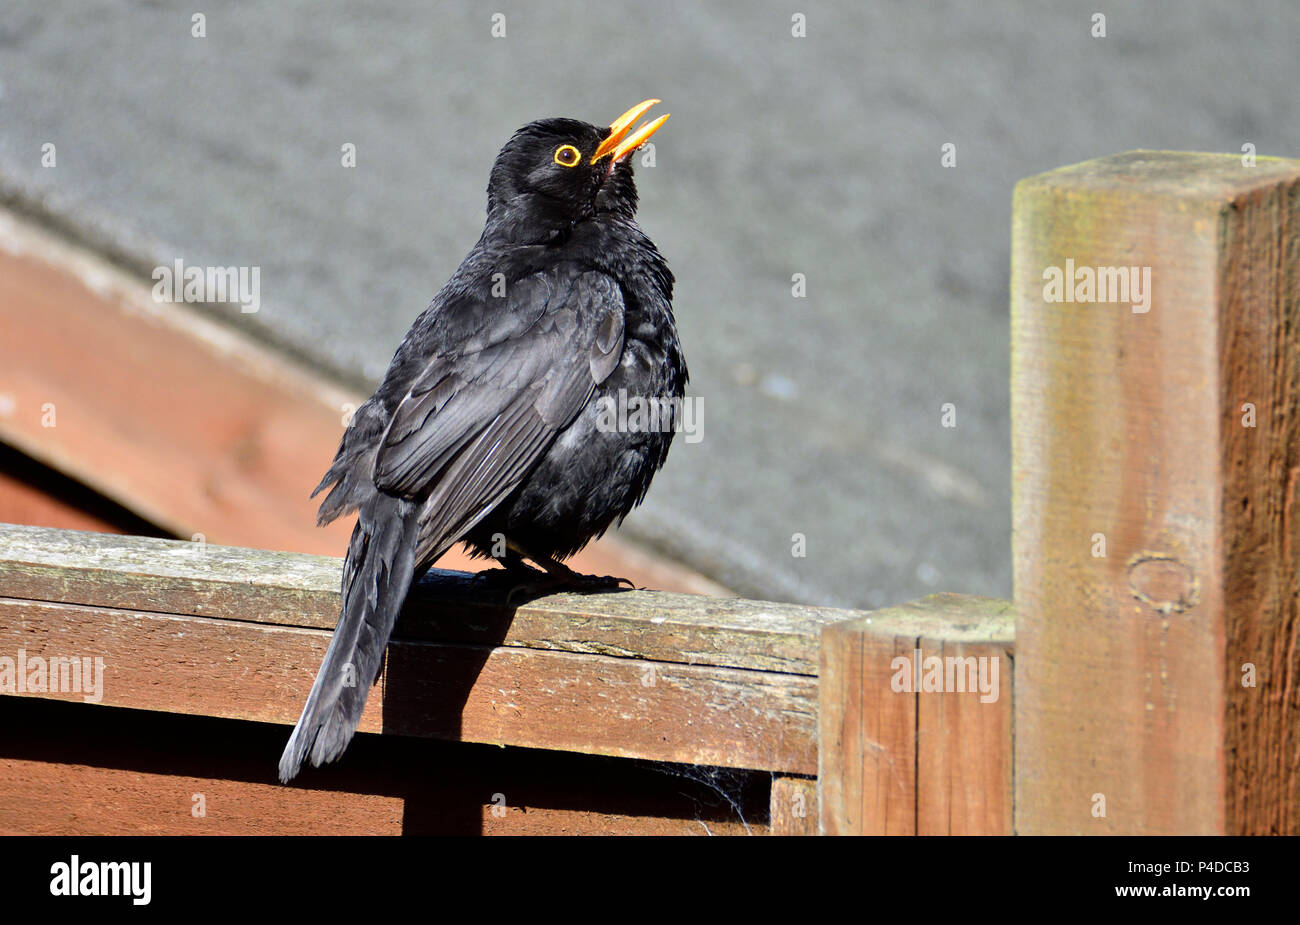 Male Blackbird (Turdus merula) sitting on a garden fence in the sun with its beak open (motionless for a long time) - Stock Image